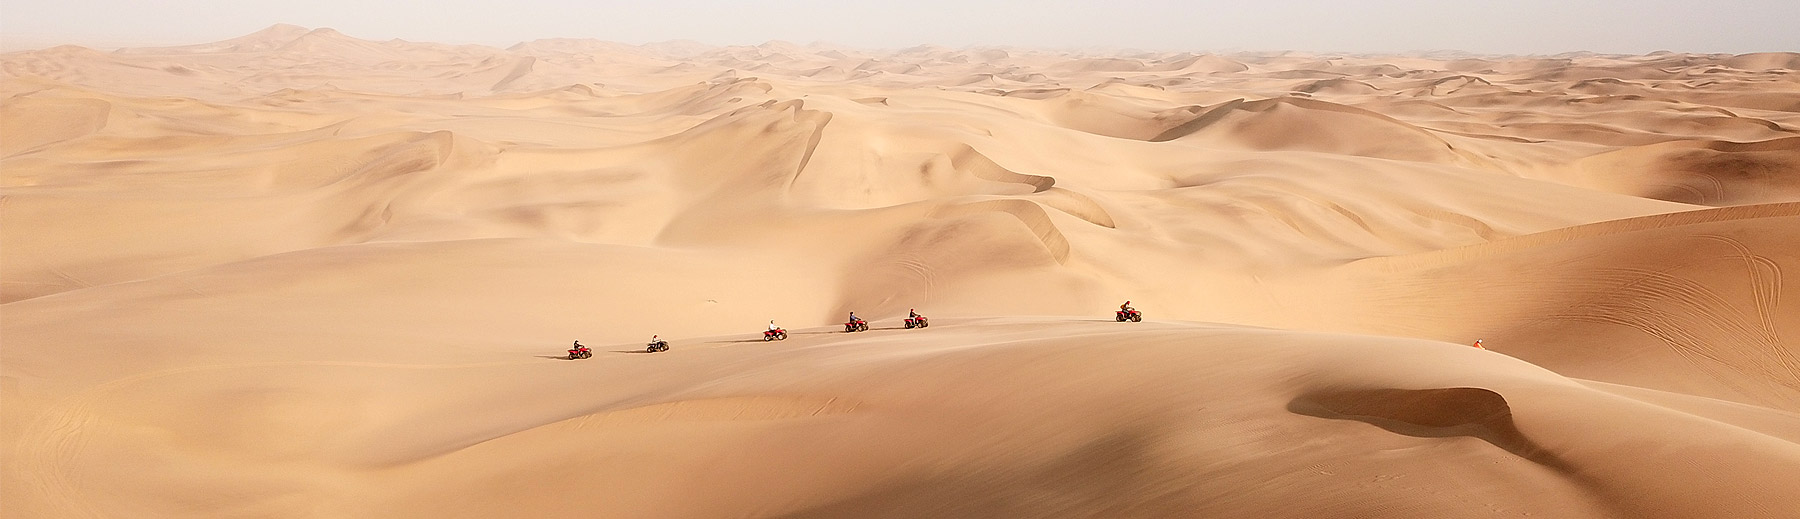 A panoramic view of quad bikes on an excursion in the endless dunes of the Namib Desert in Swakopmund.